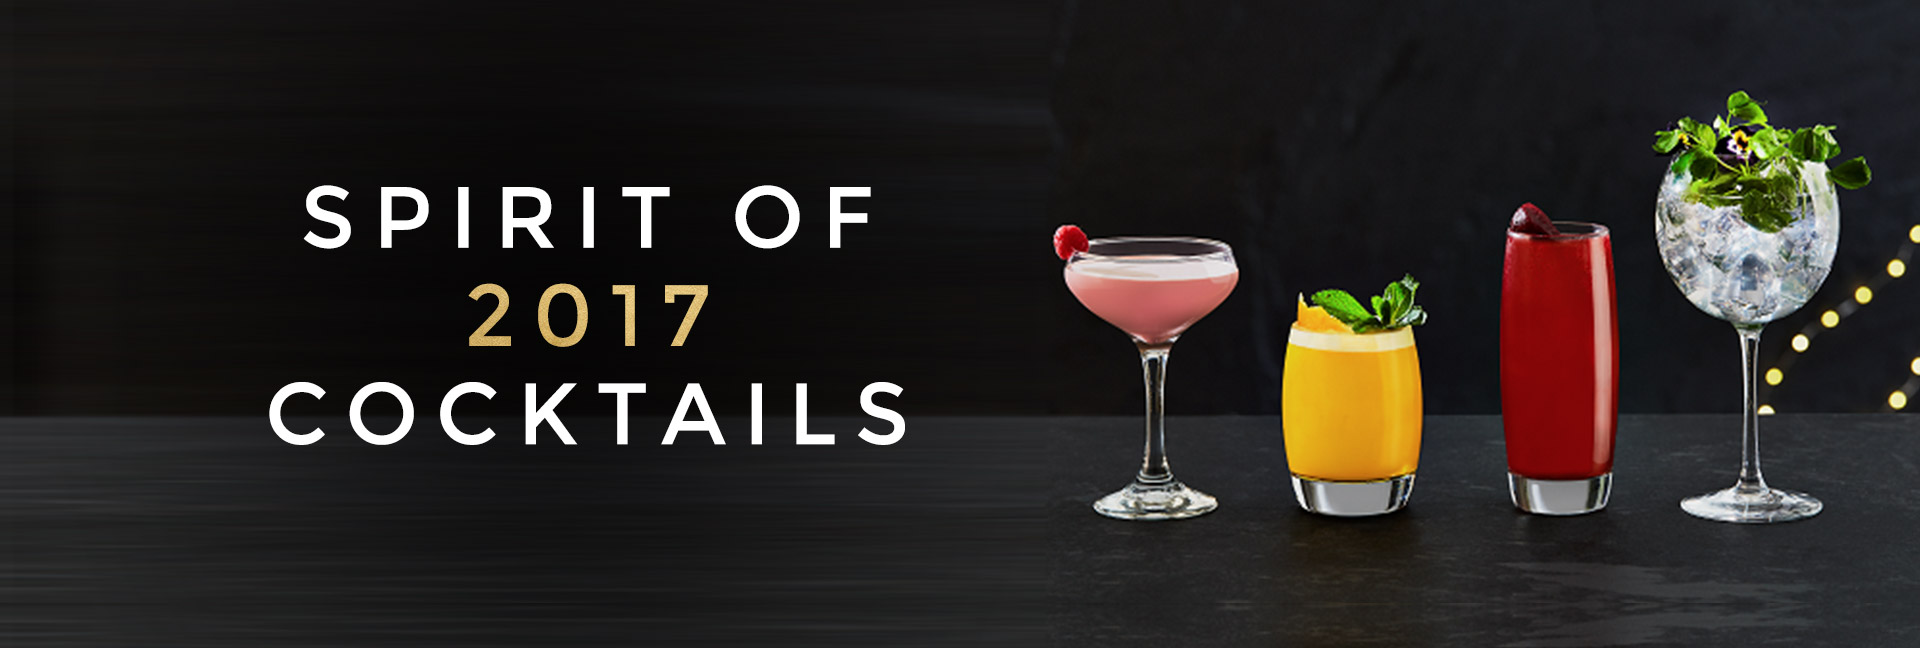 Spirit of 2017 cocktails at All Bar One Windsor